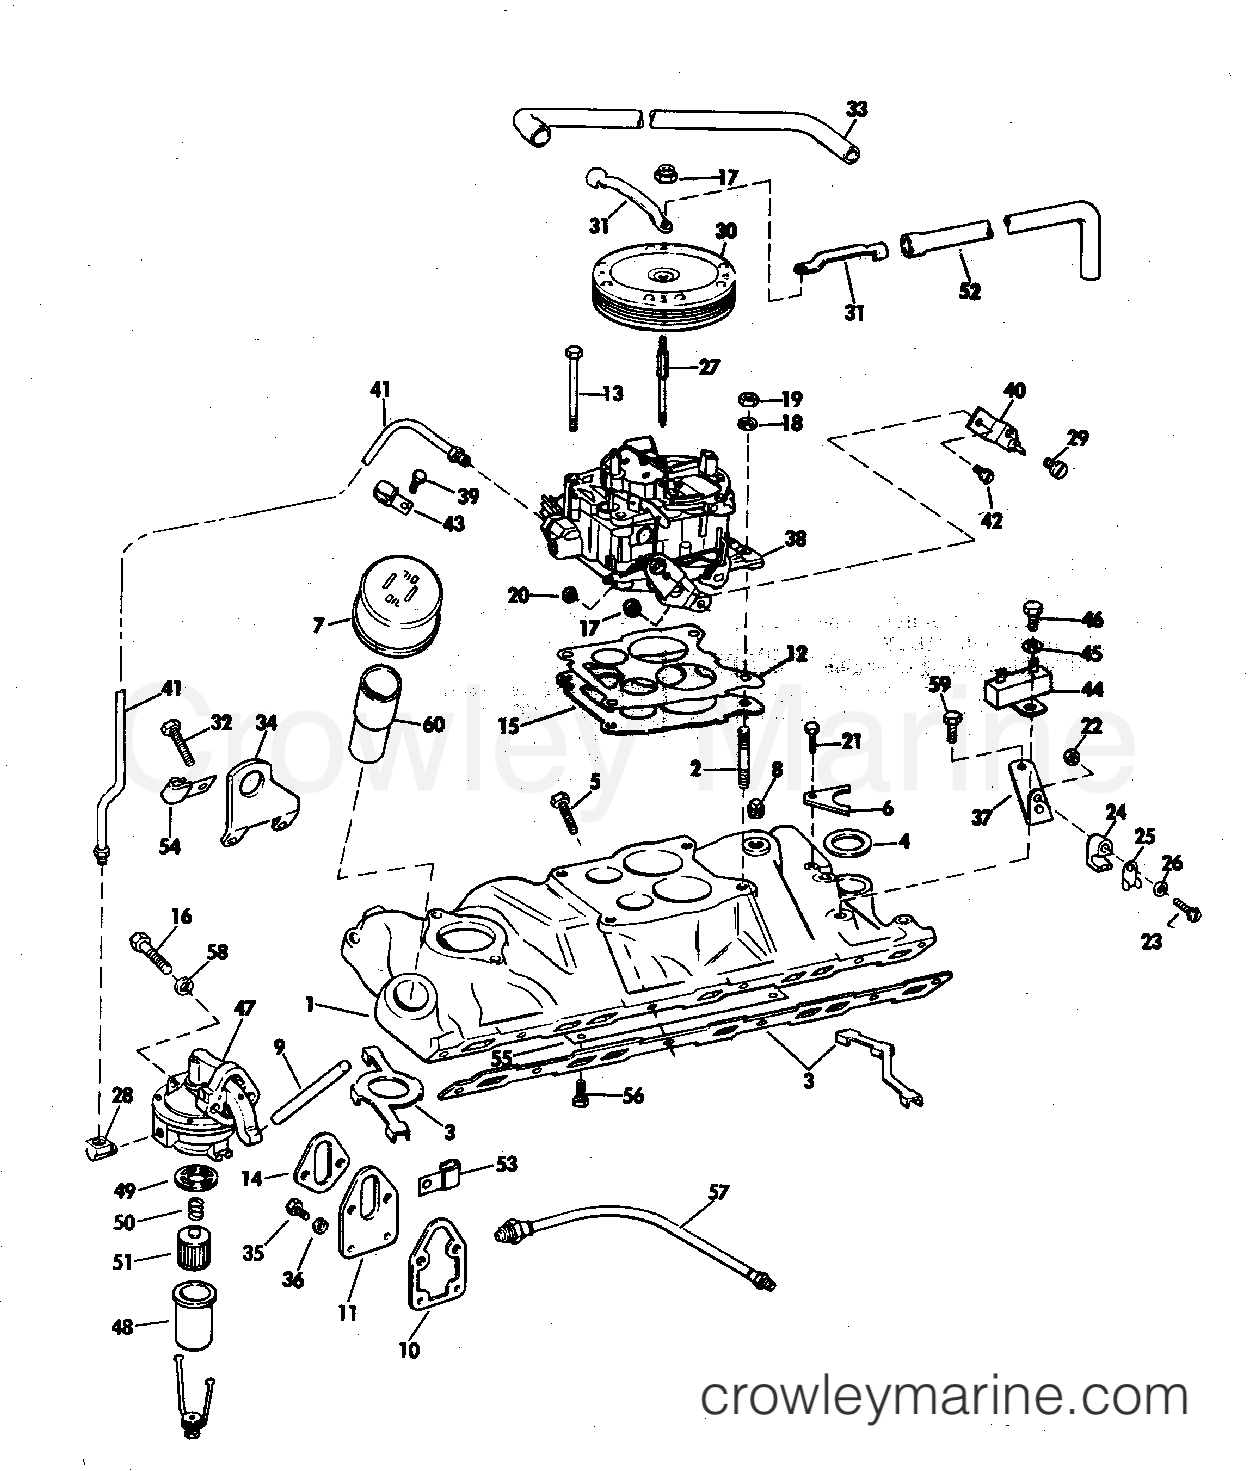 1970 OMC Stern Drive 210 - TUFM-19E INTAKE MANIFOLD, FUEL PUMP, AND CARBURETOR LINES 210 HP section